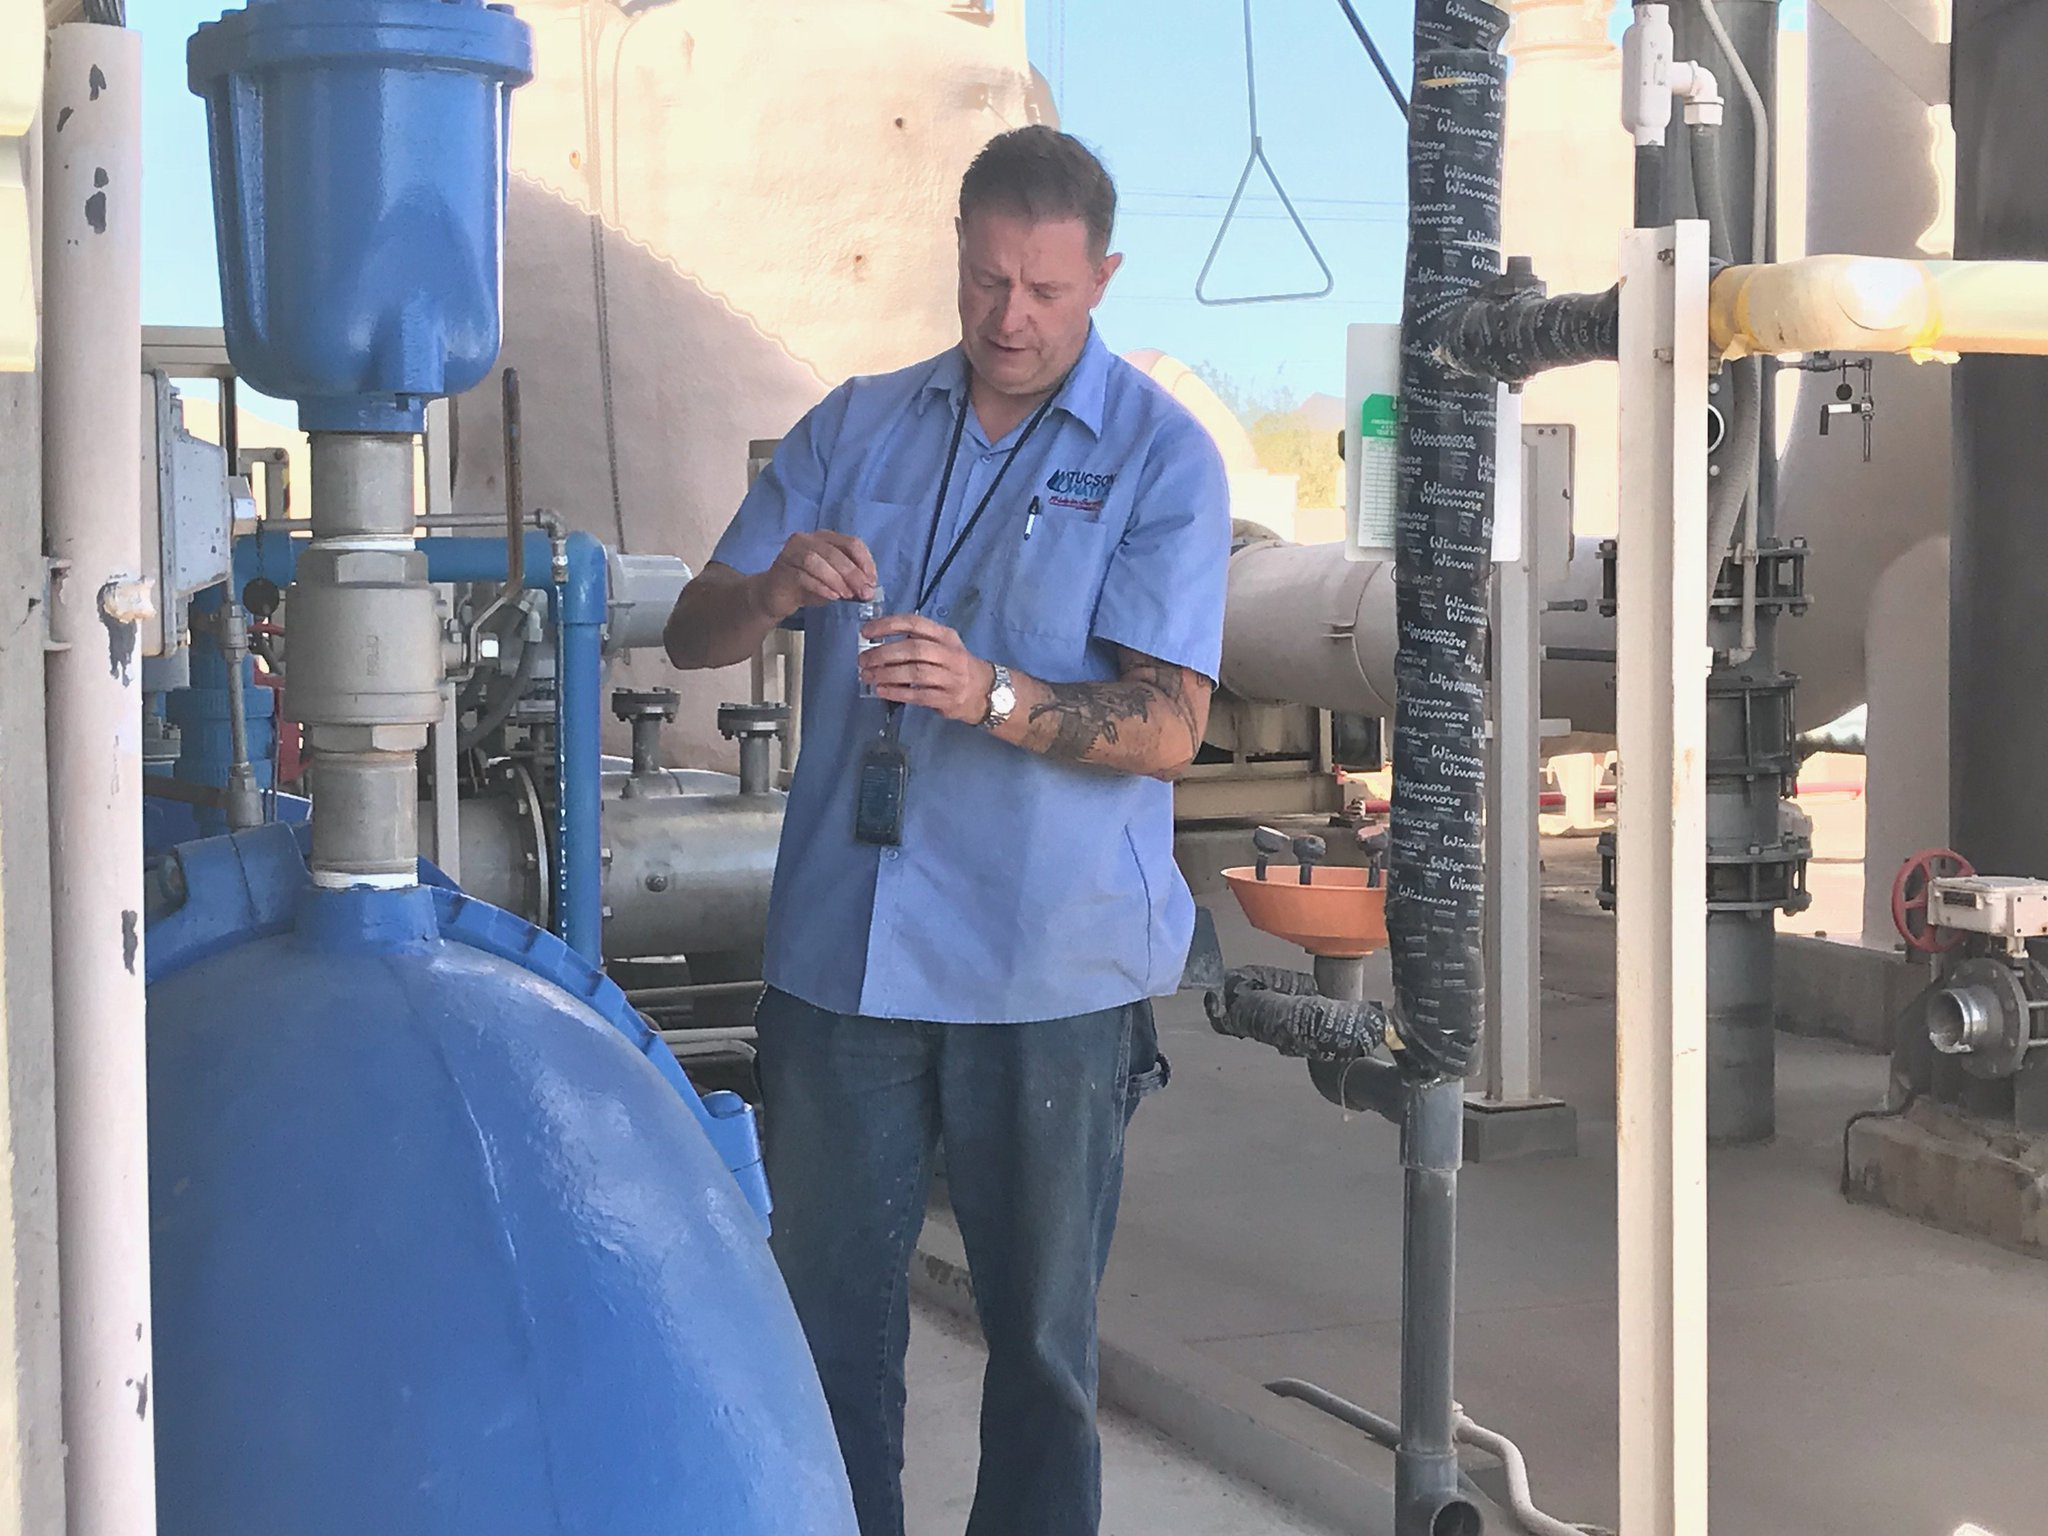 Tucson Water On Twitter Tucson Water Recruiting Water System